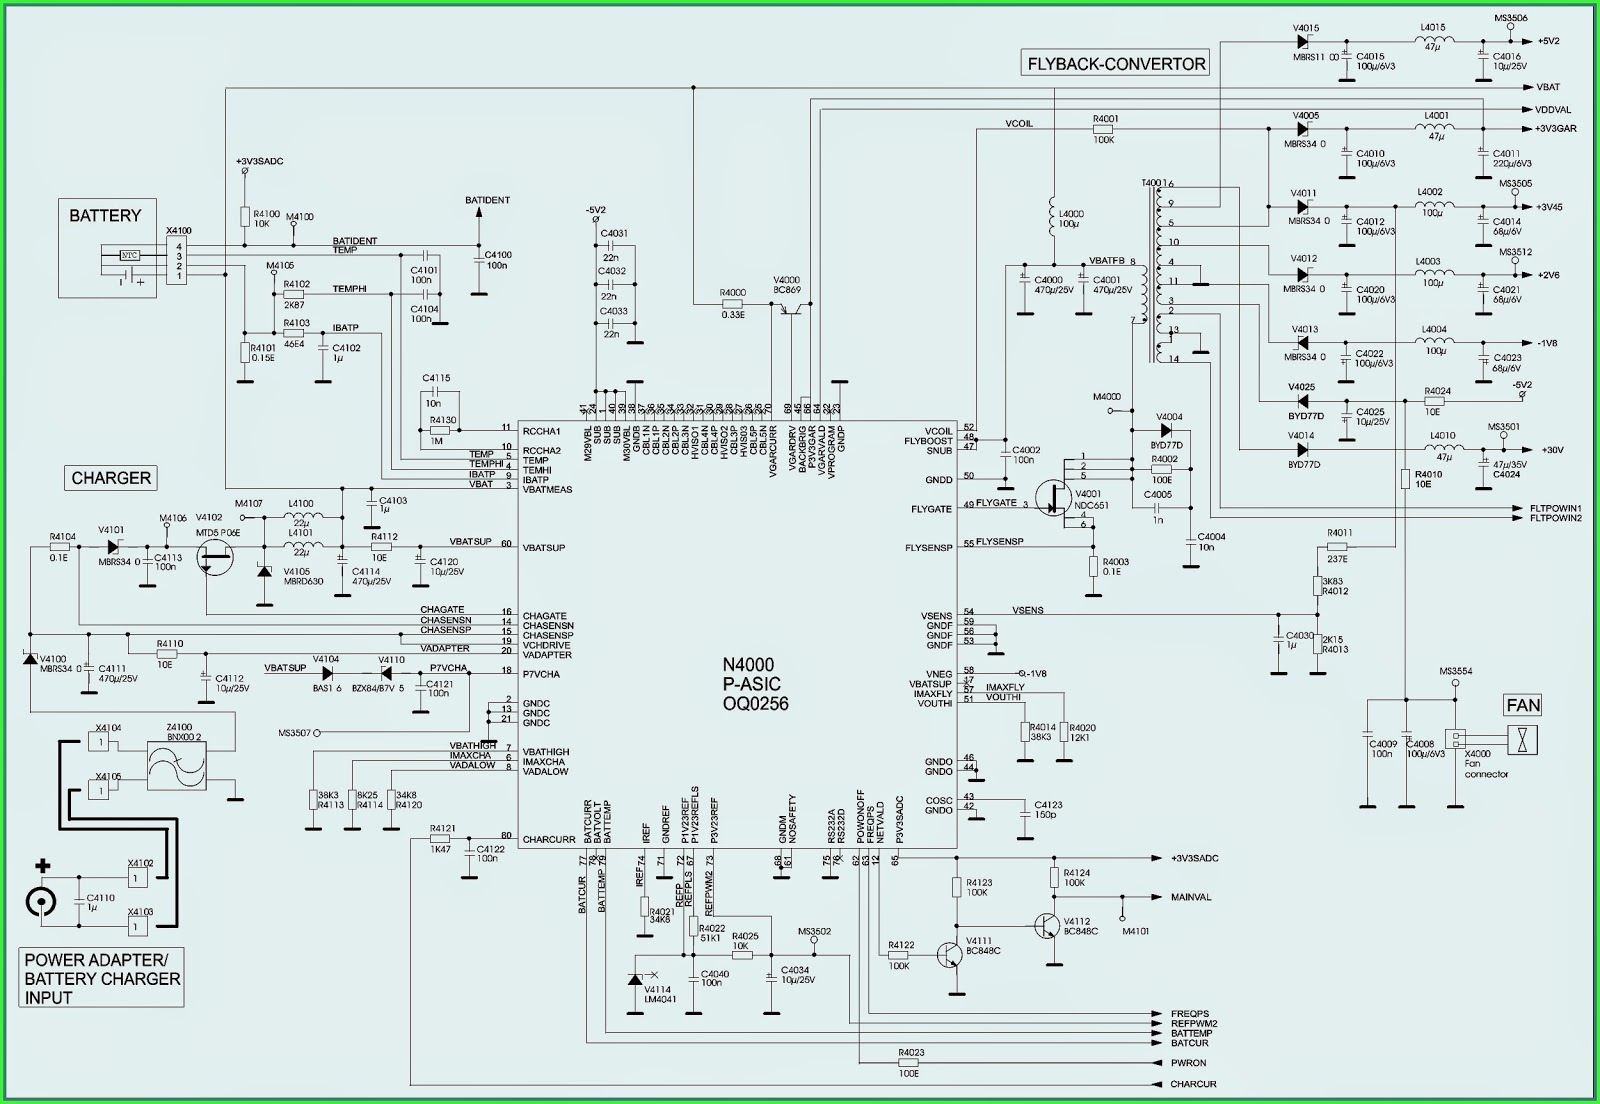 2003 Hyundai Xg350 Fuse Box Wiring Diagram And Xg300 2004 Likewise P 0900c1528026a7b1 Additionally